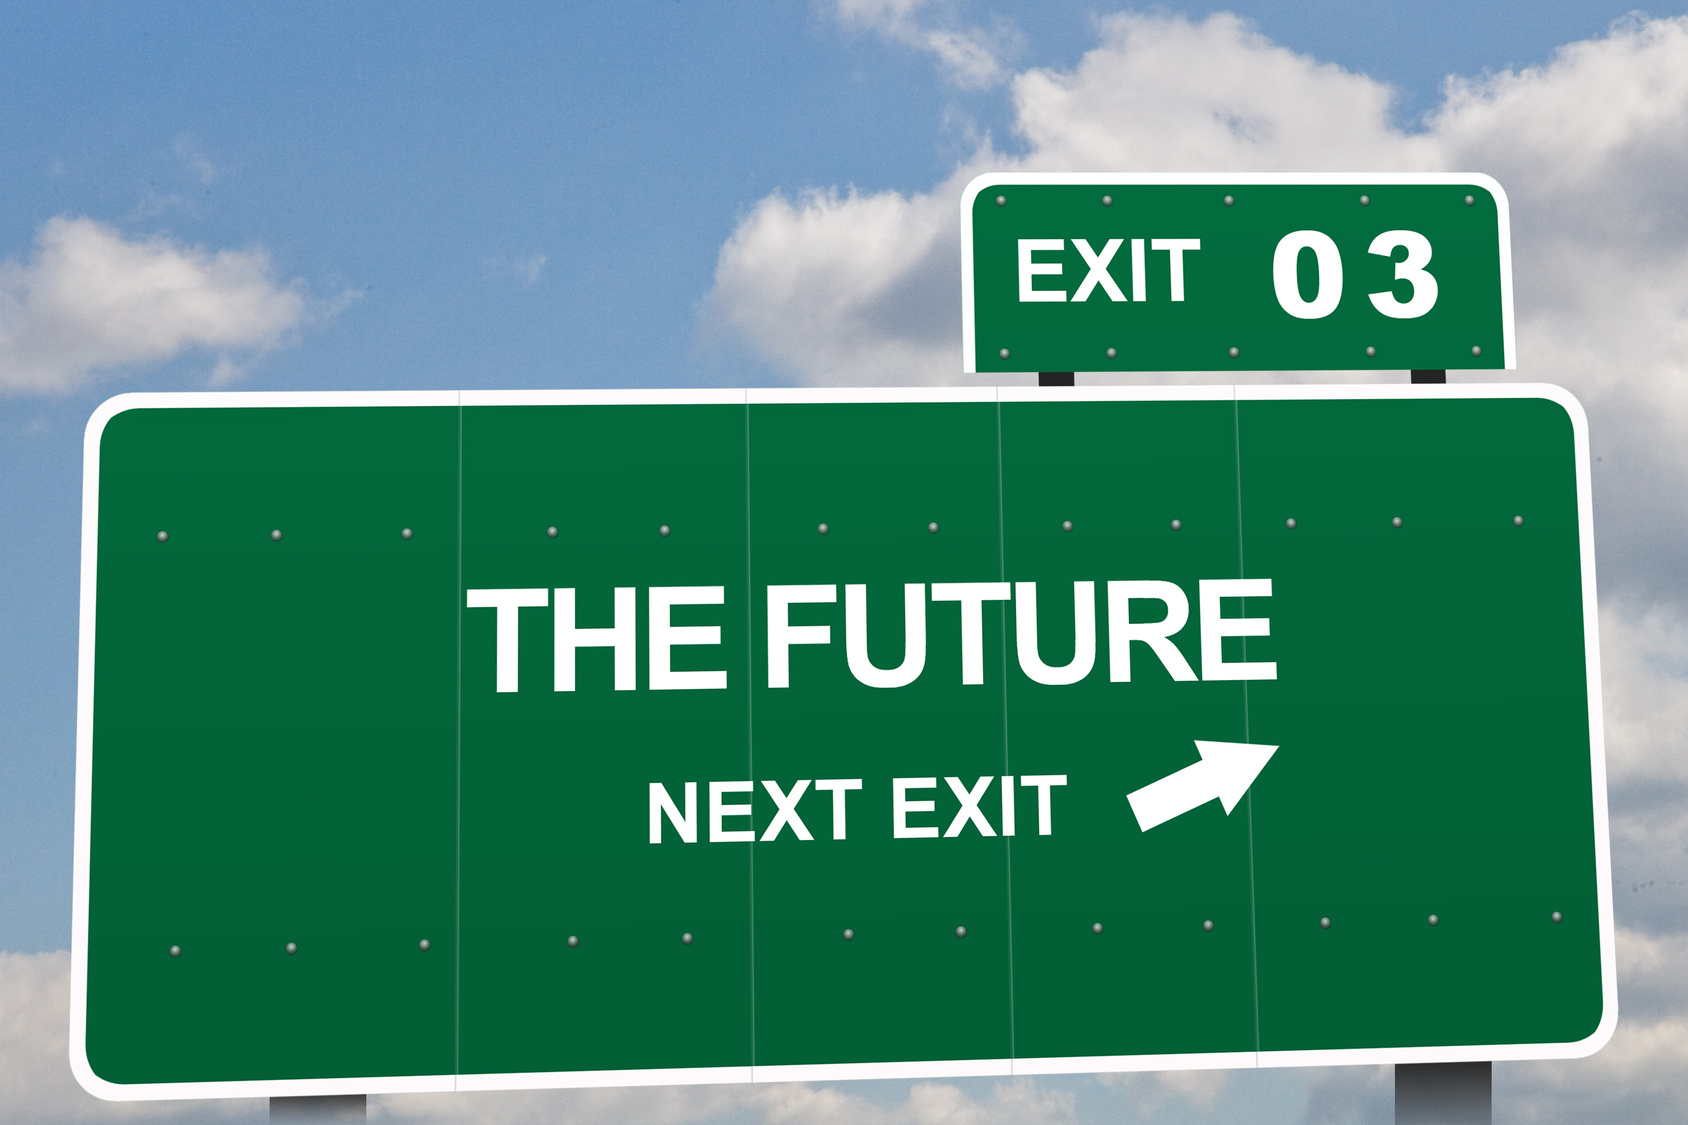 Purchased image - The Future Next Exit Fotolia_6549912_M